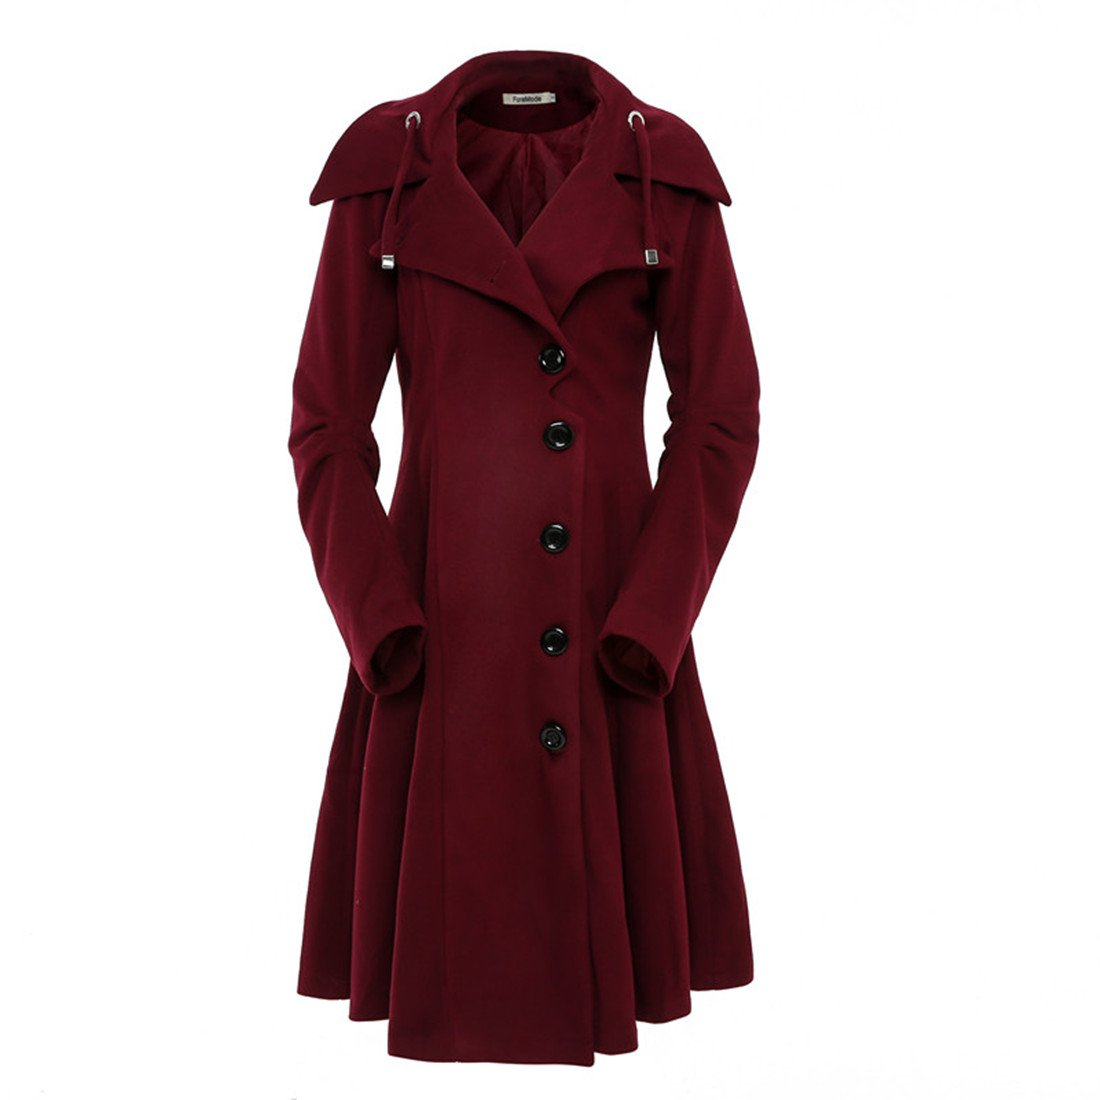 ForeMode Women's Jacket with Button Closure Asymmetrical Hem Long Trench Black Cloak Wool Coat,Tawny Port,Large